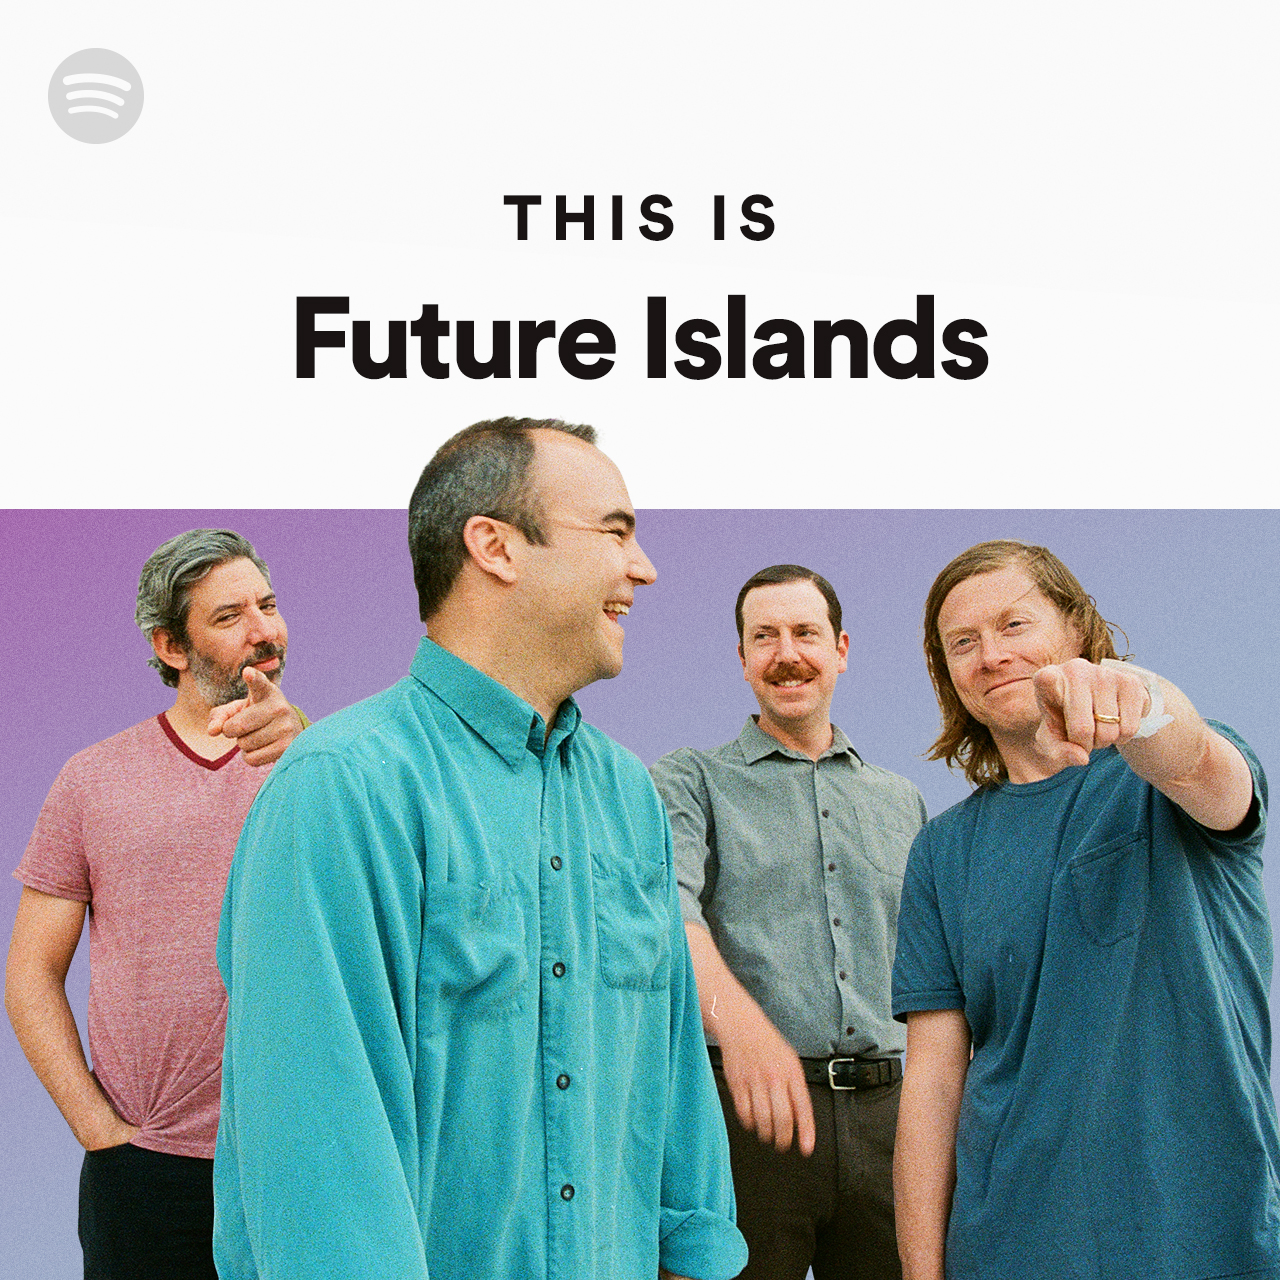 This Is Future Islands